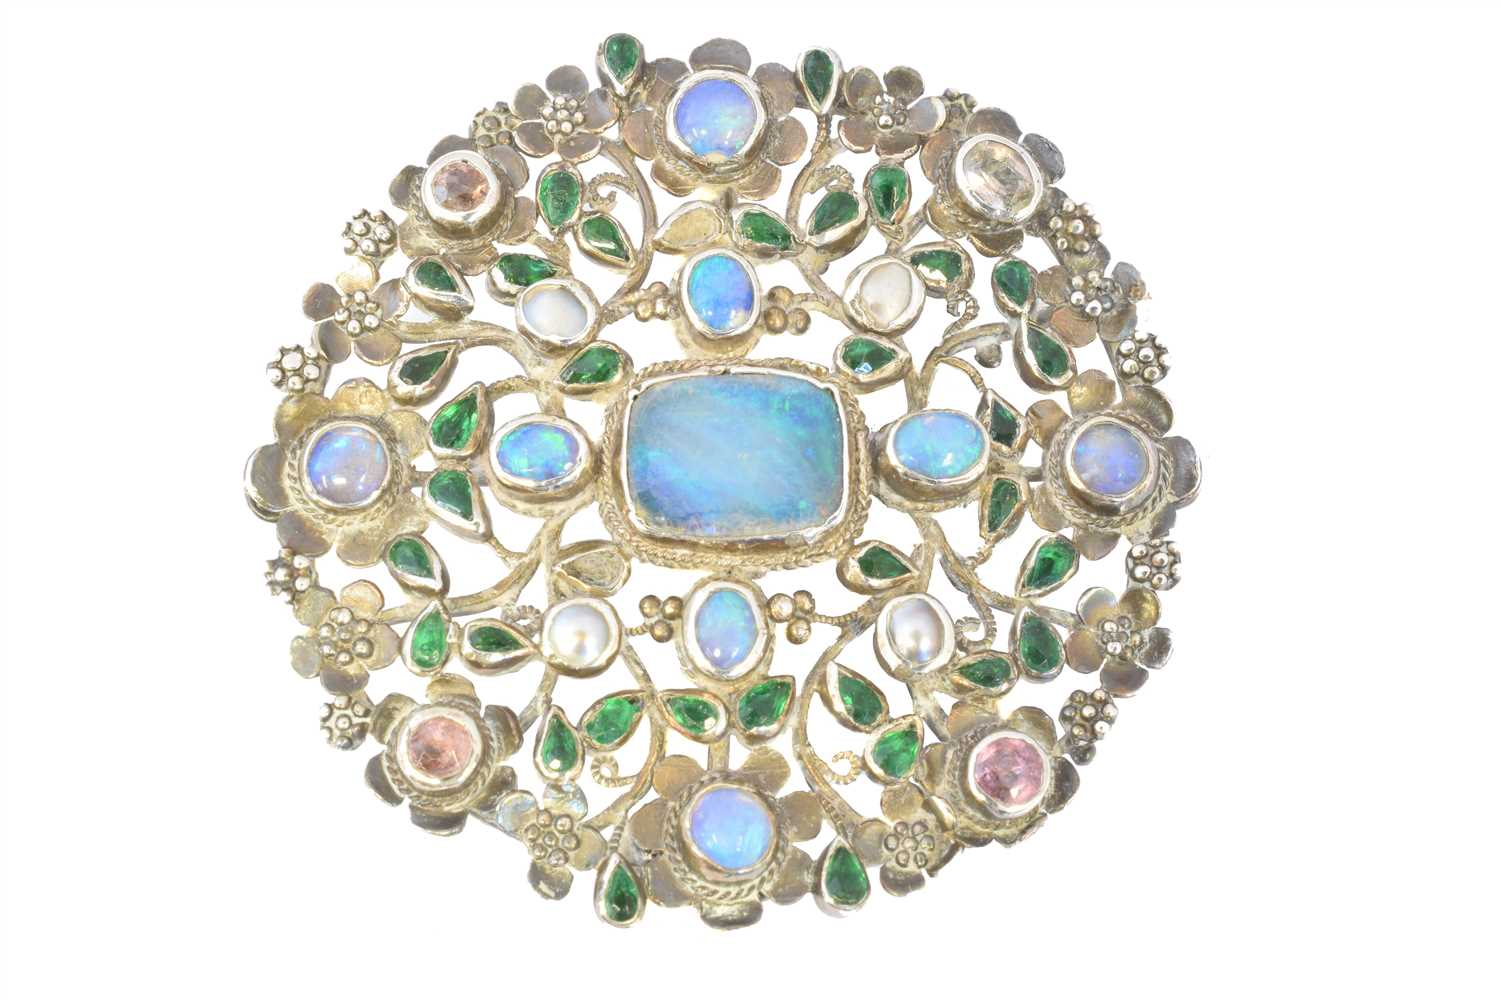 Lot 83-An Arts & Crafts opal and vari gem brooch attributed to Arthur and Georgie Gaskin